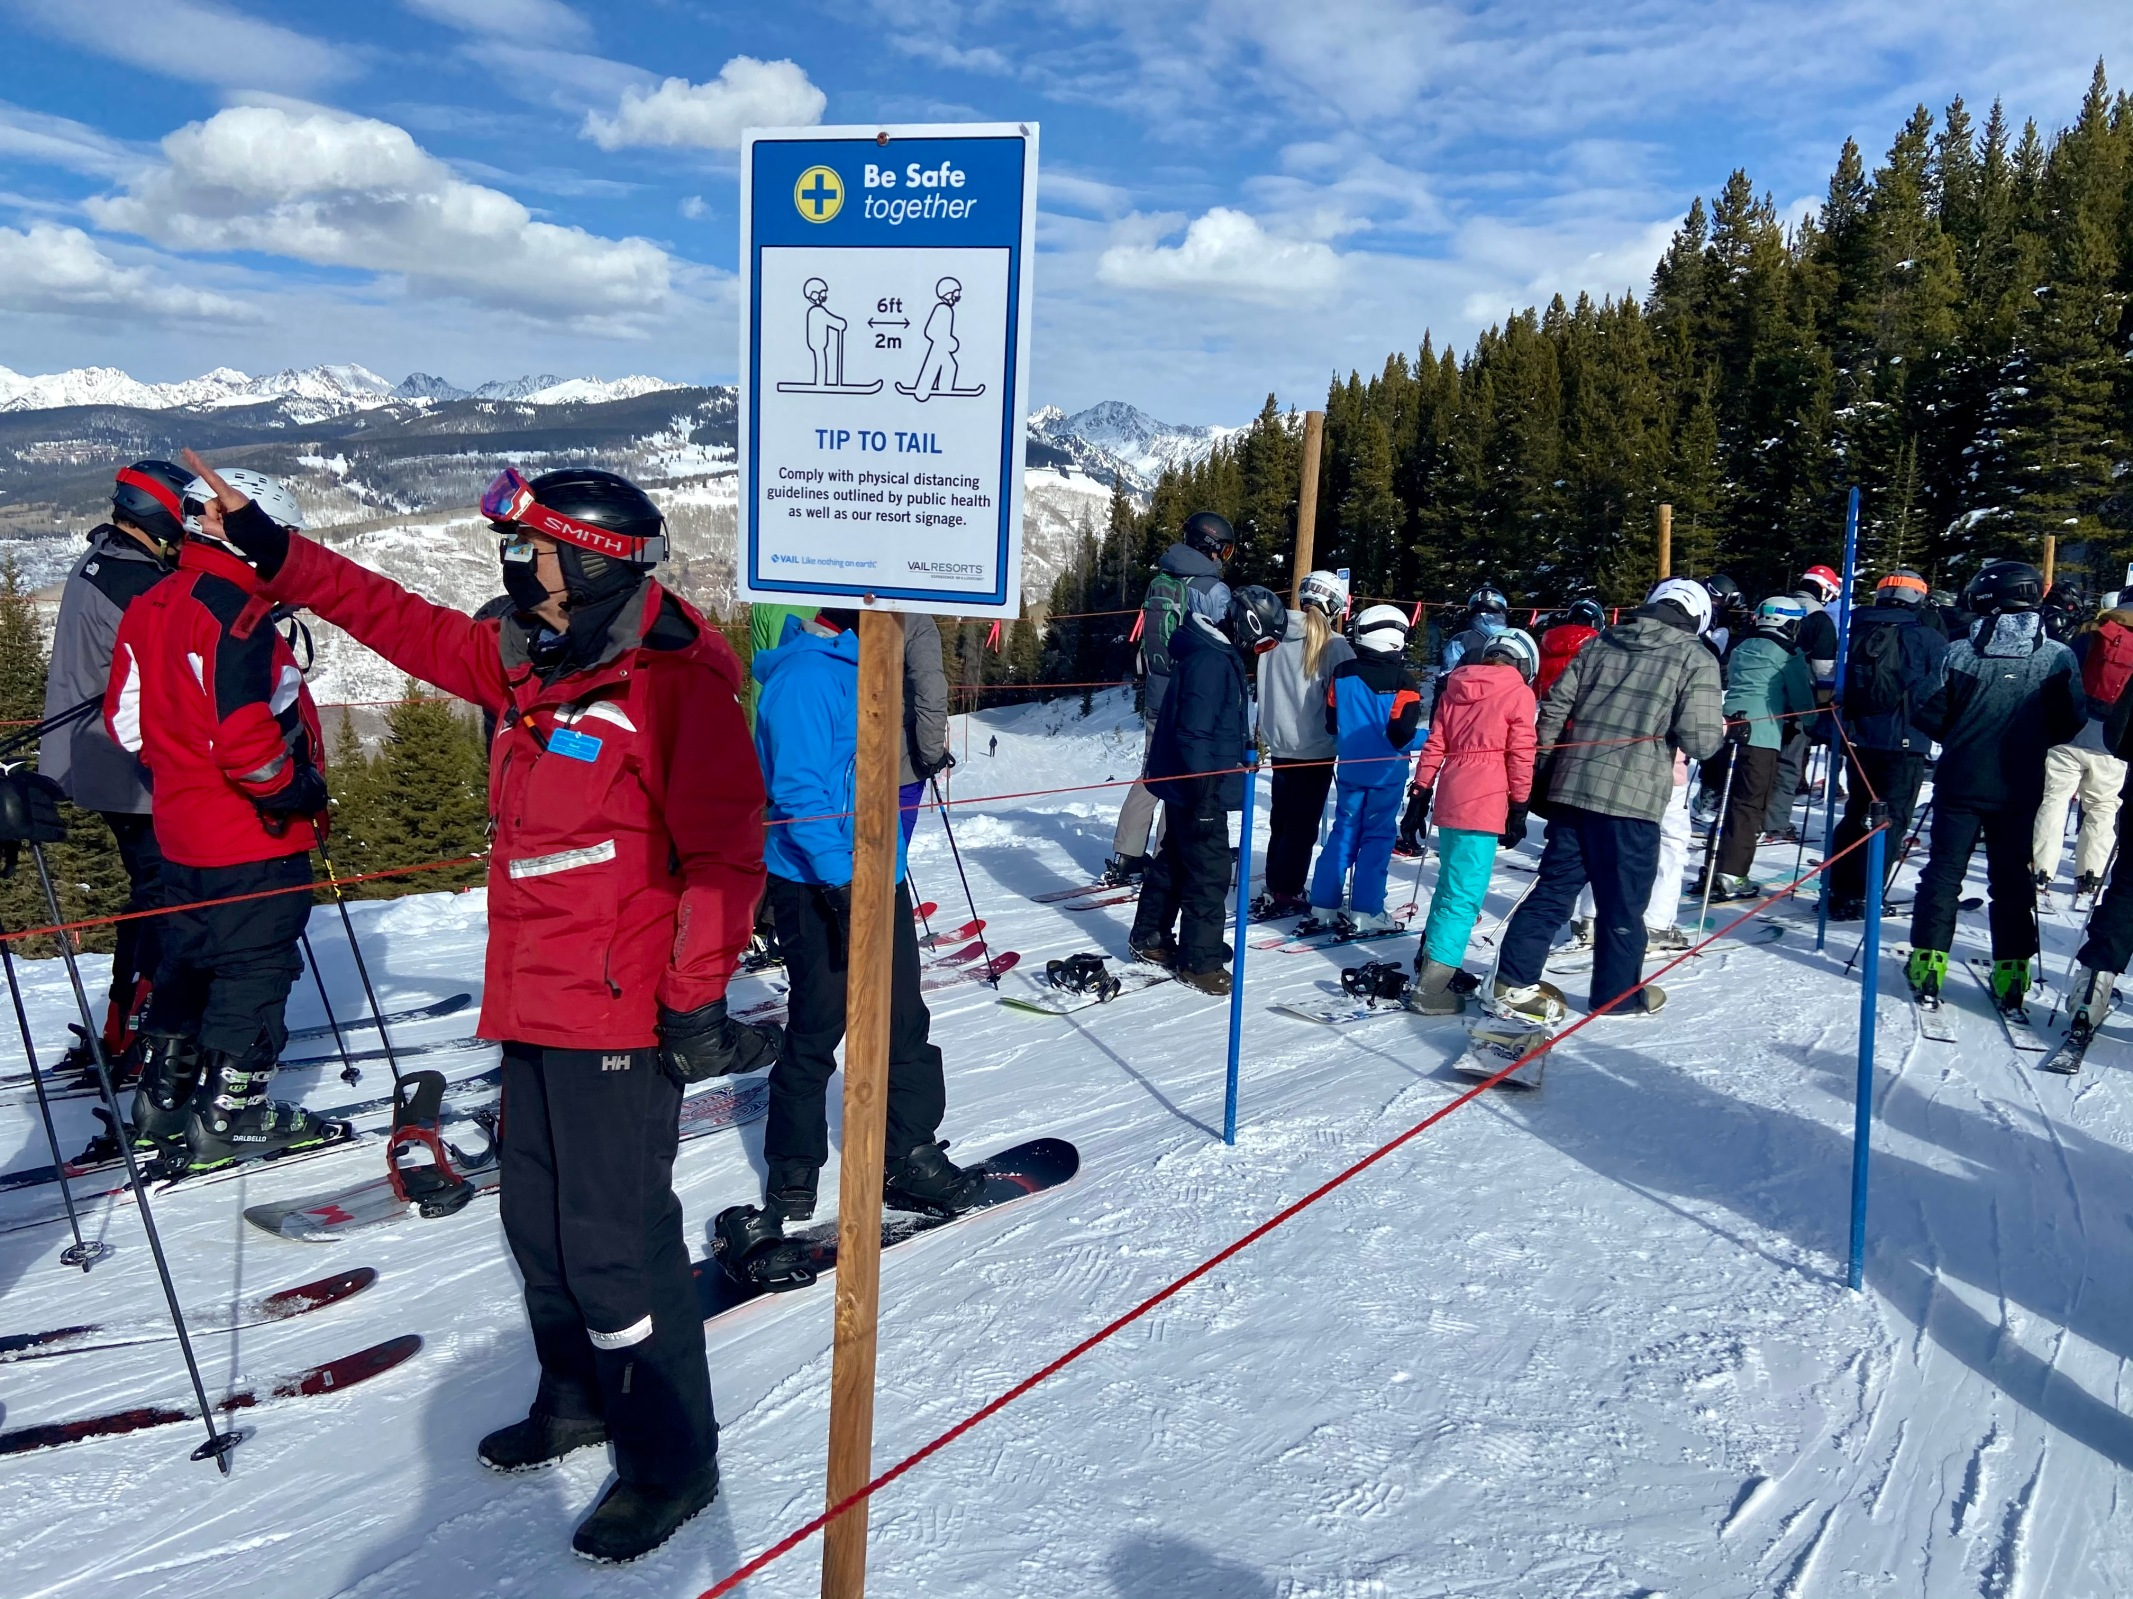 A Vail employee in an empty lane between lines of skiers reminds skiers to keep their masks over their nose. (Jason Blevins, The Colorado Sun)